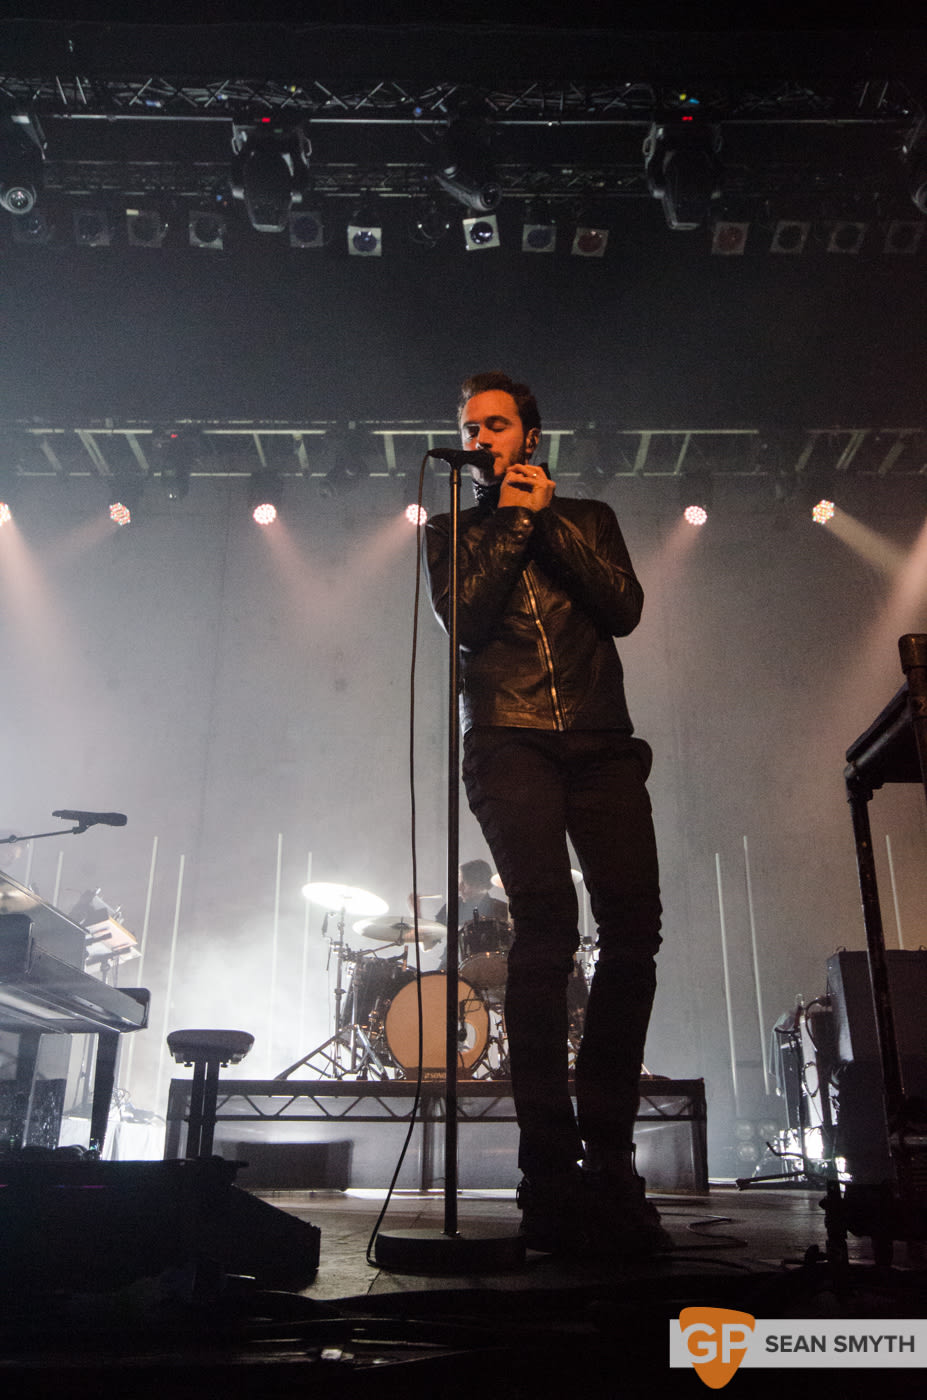 editors-at-the-olympia-theatre-by-sean-smyth-10-10-15-11-of-28_22100460601_o